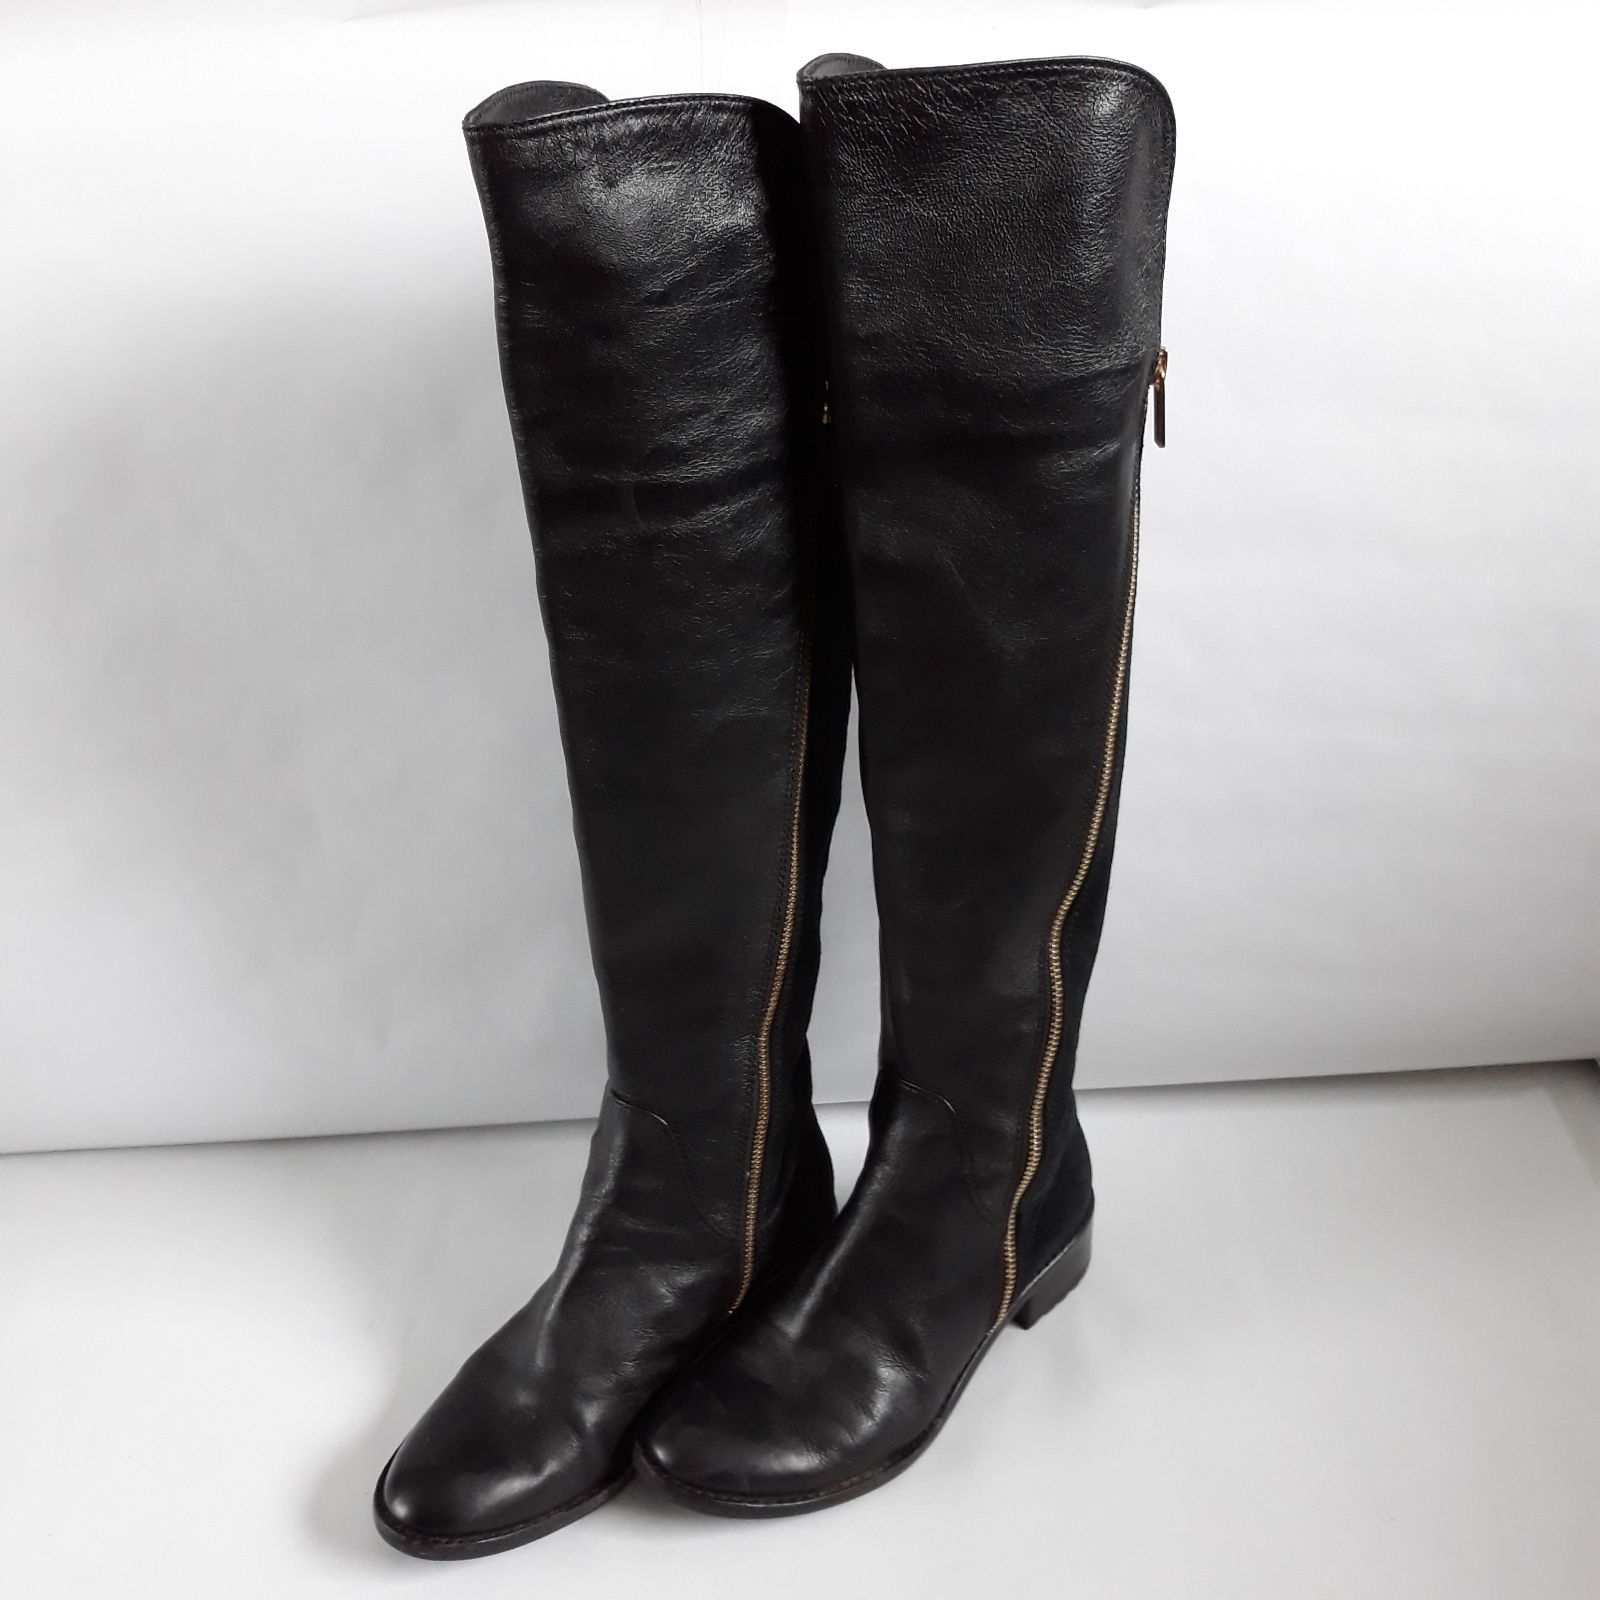 Michael Kors Leather Over The Knee Boots